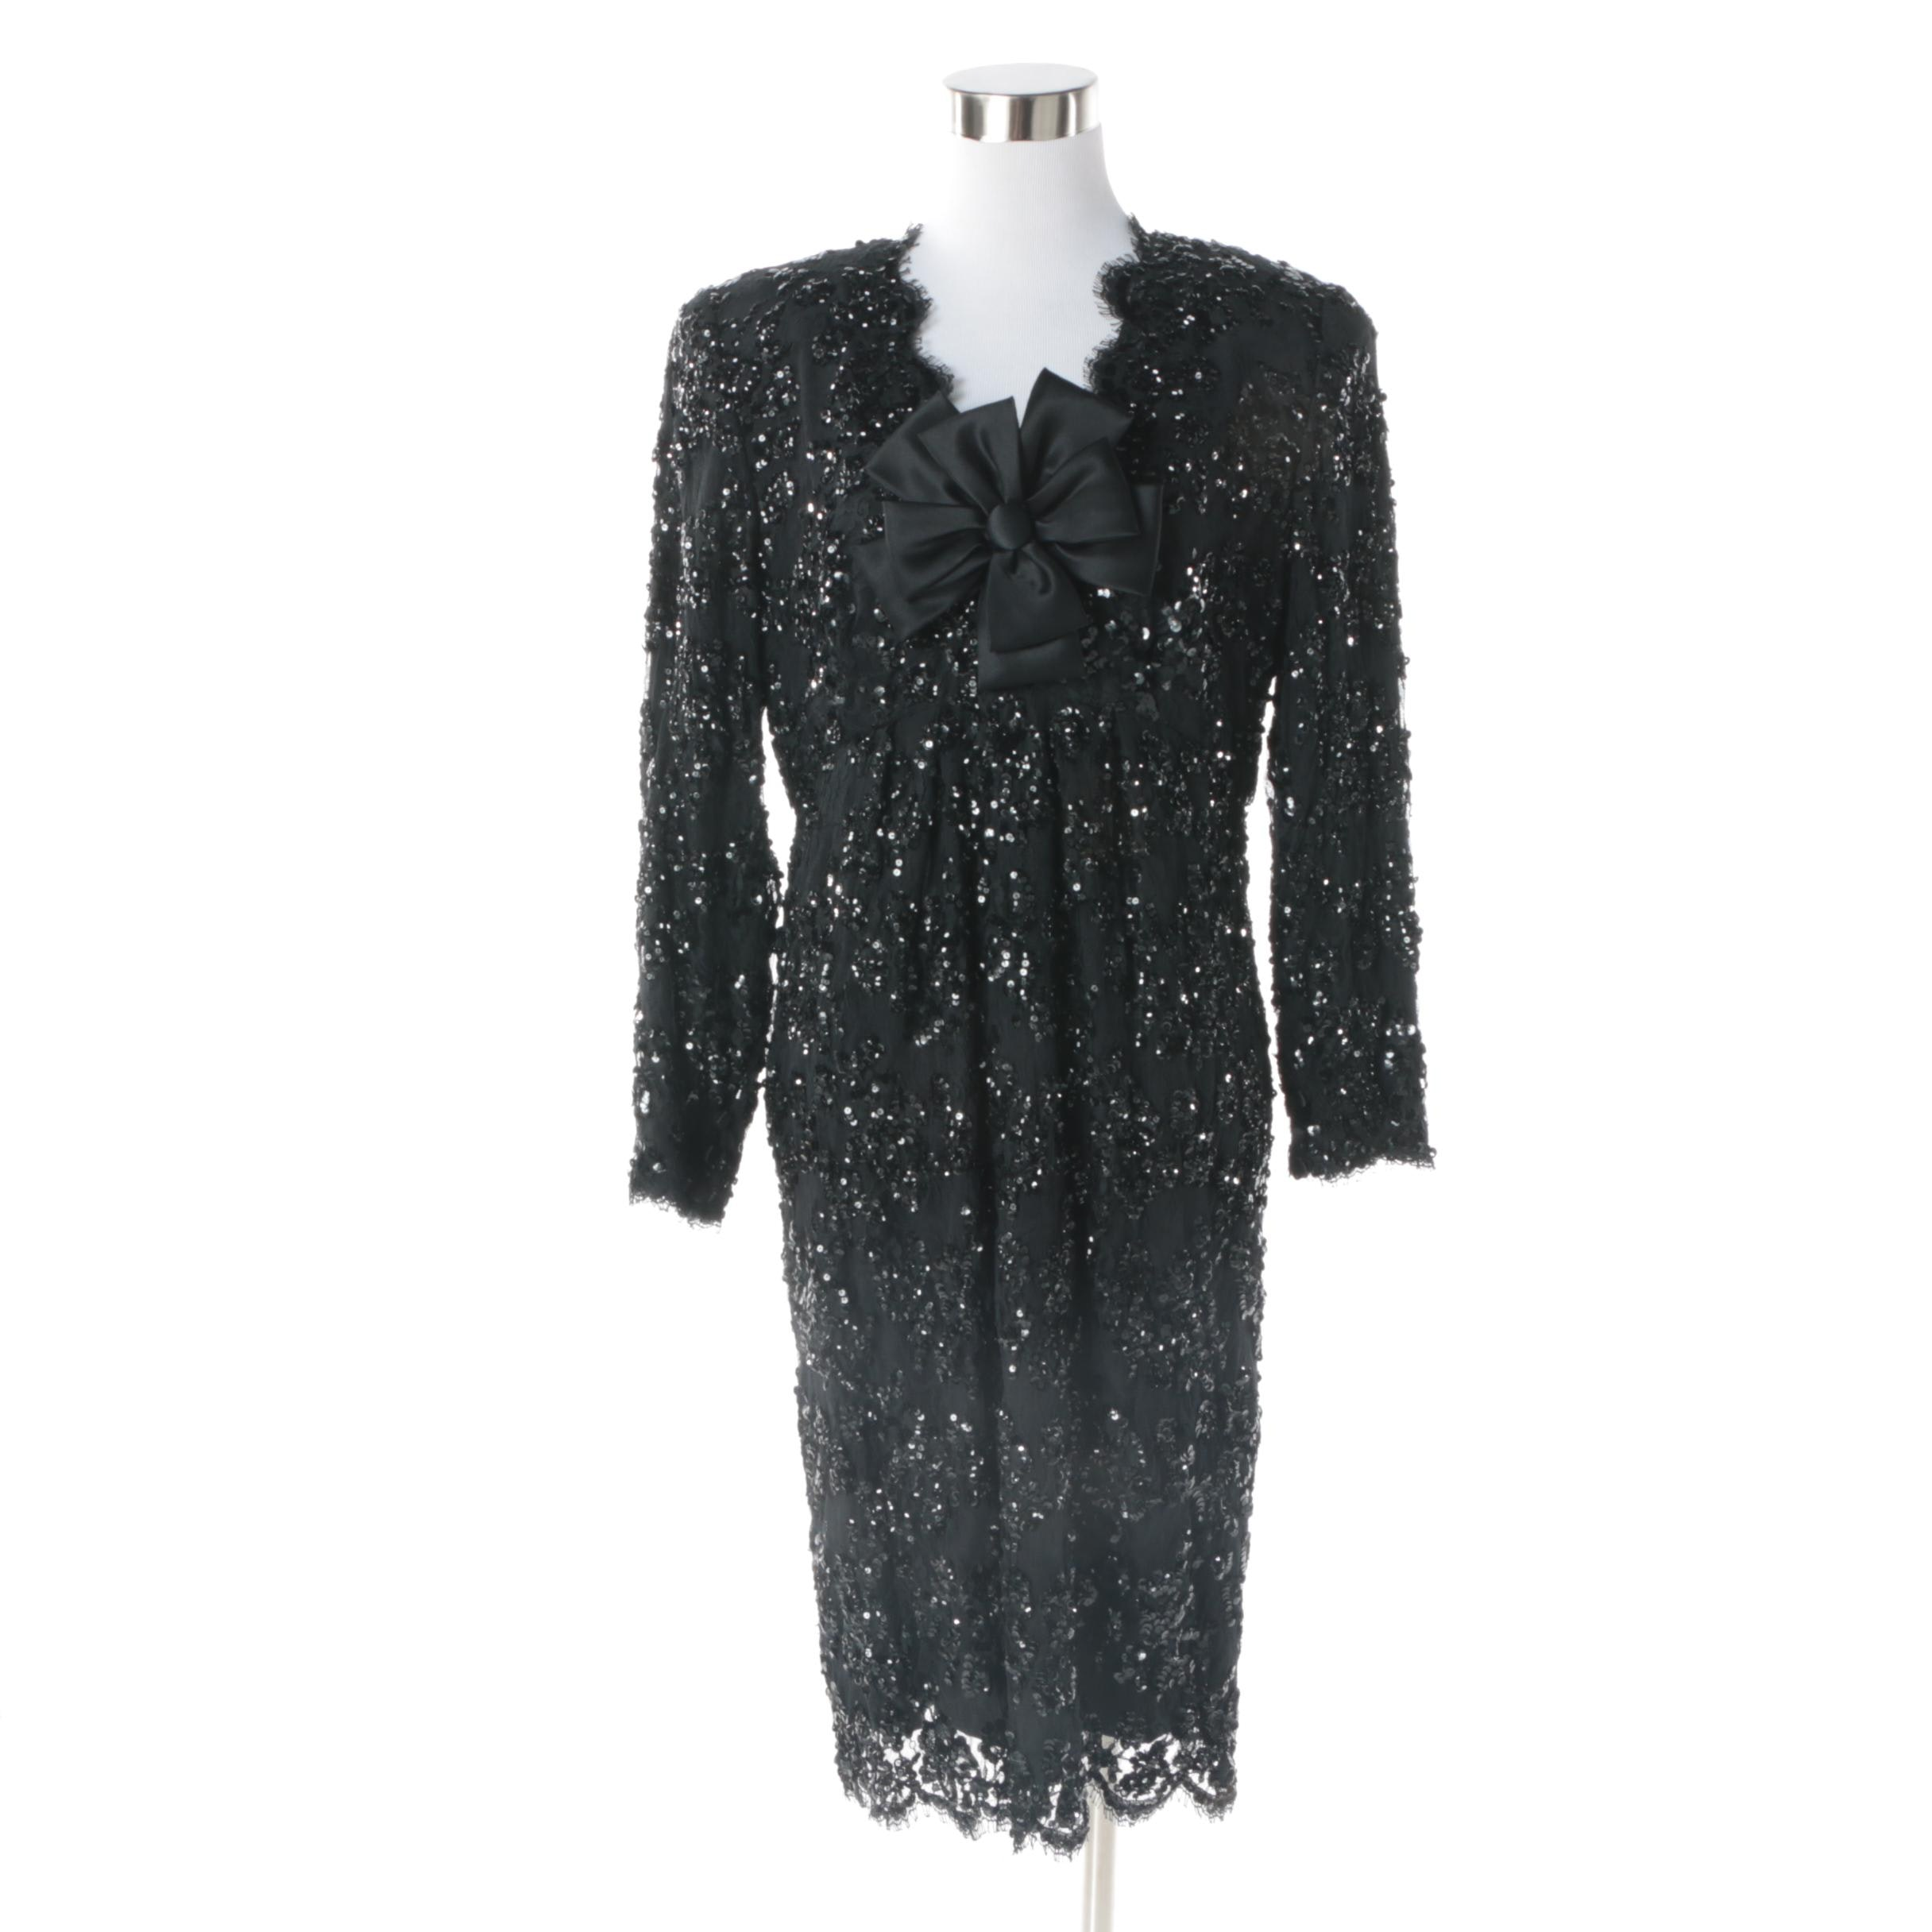 1980s Stanley Platos - Martin Ross Black Floral Lace and Sequin Cocktail Dress